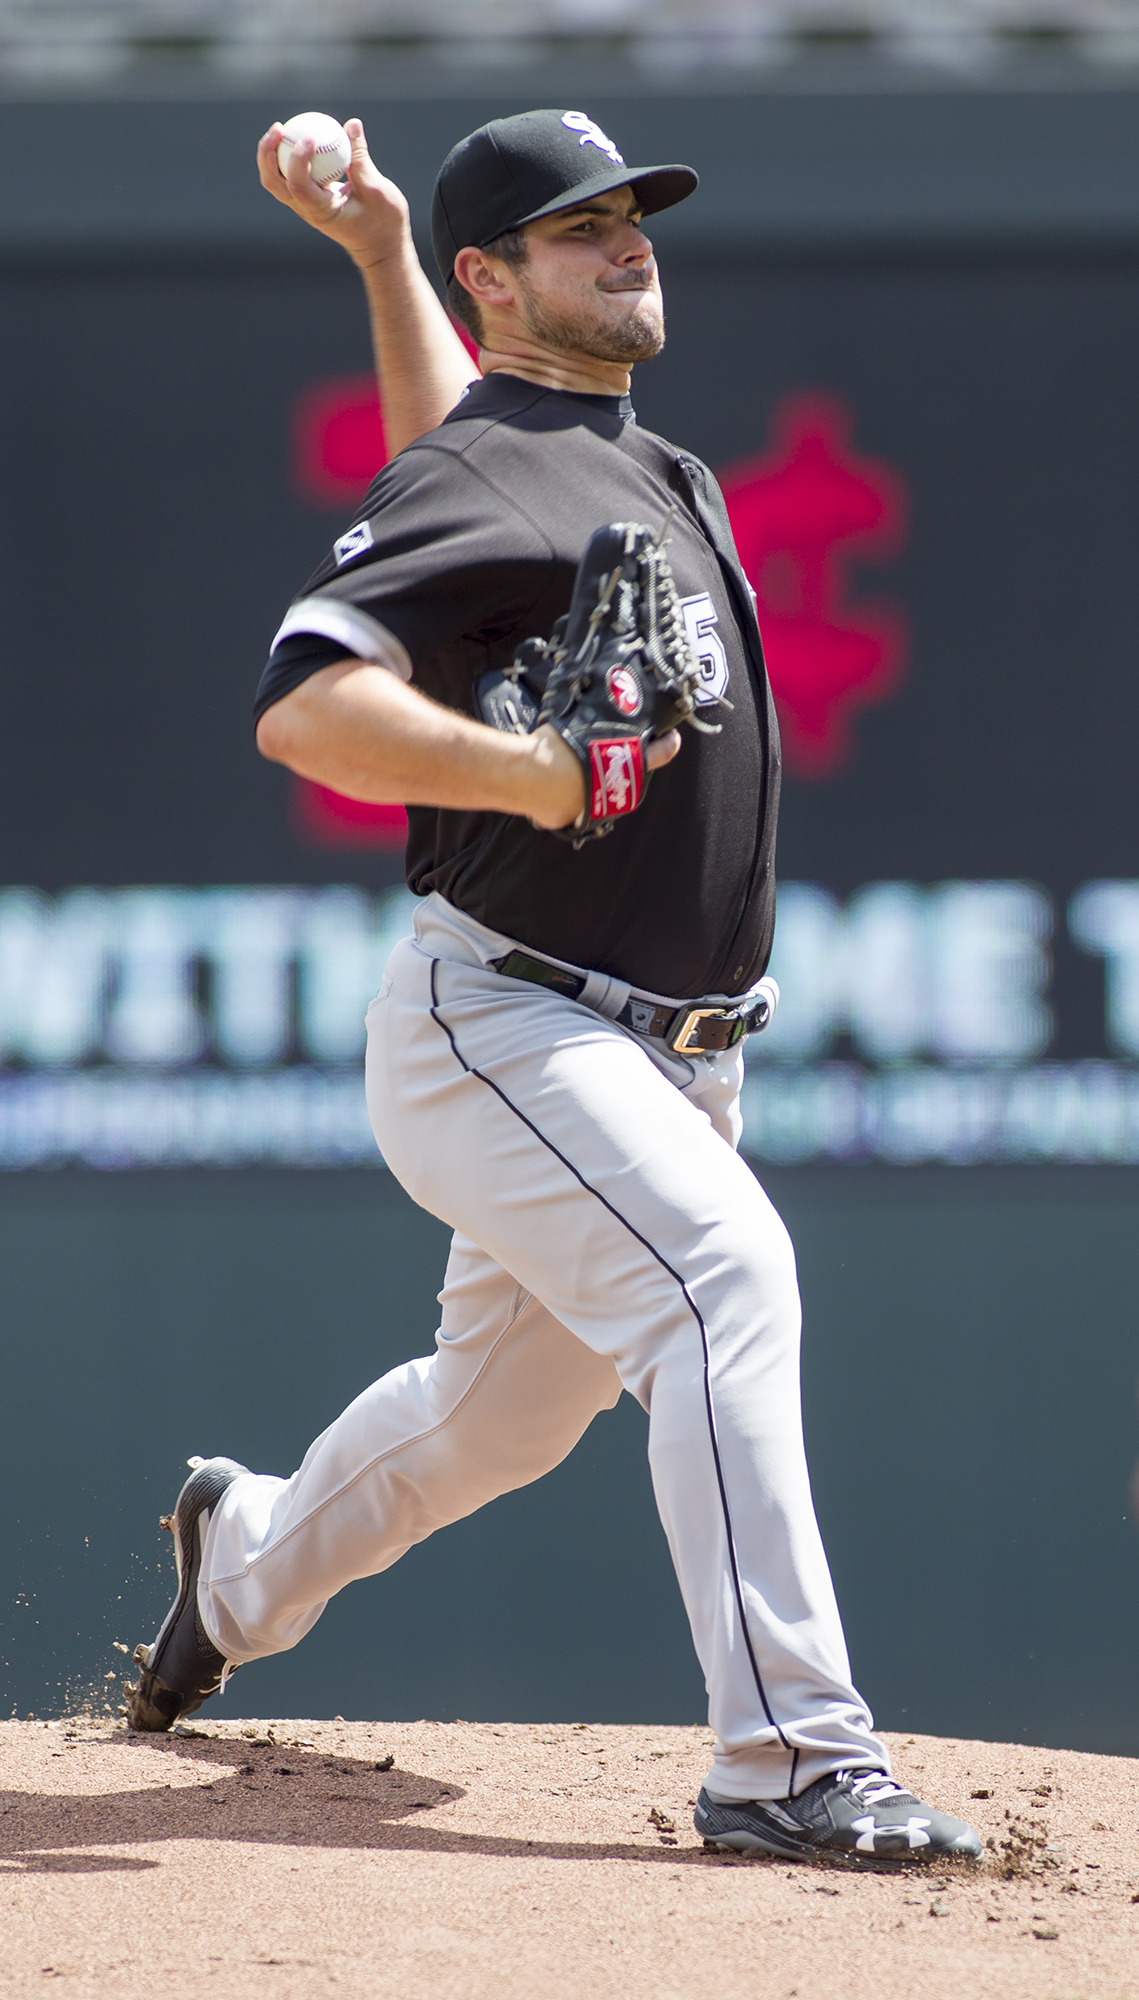 Chicago White Sox starting pitcher Carlos Rodon delivers during the first inning of a baseball game against the Minnesota Twins, Sunday, July 31, 2016, in Minneapolis. (AP Photo/Paul Battaglia)